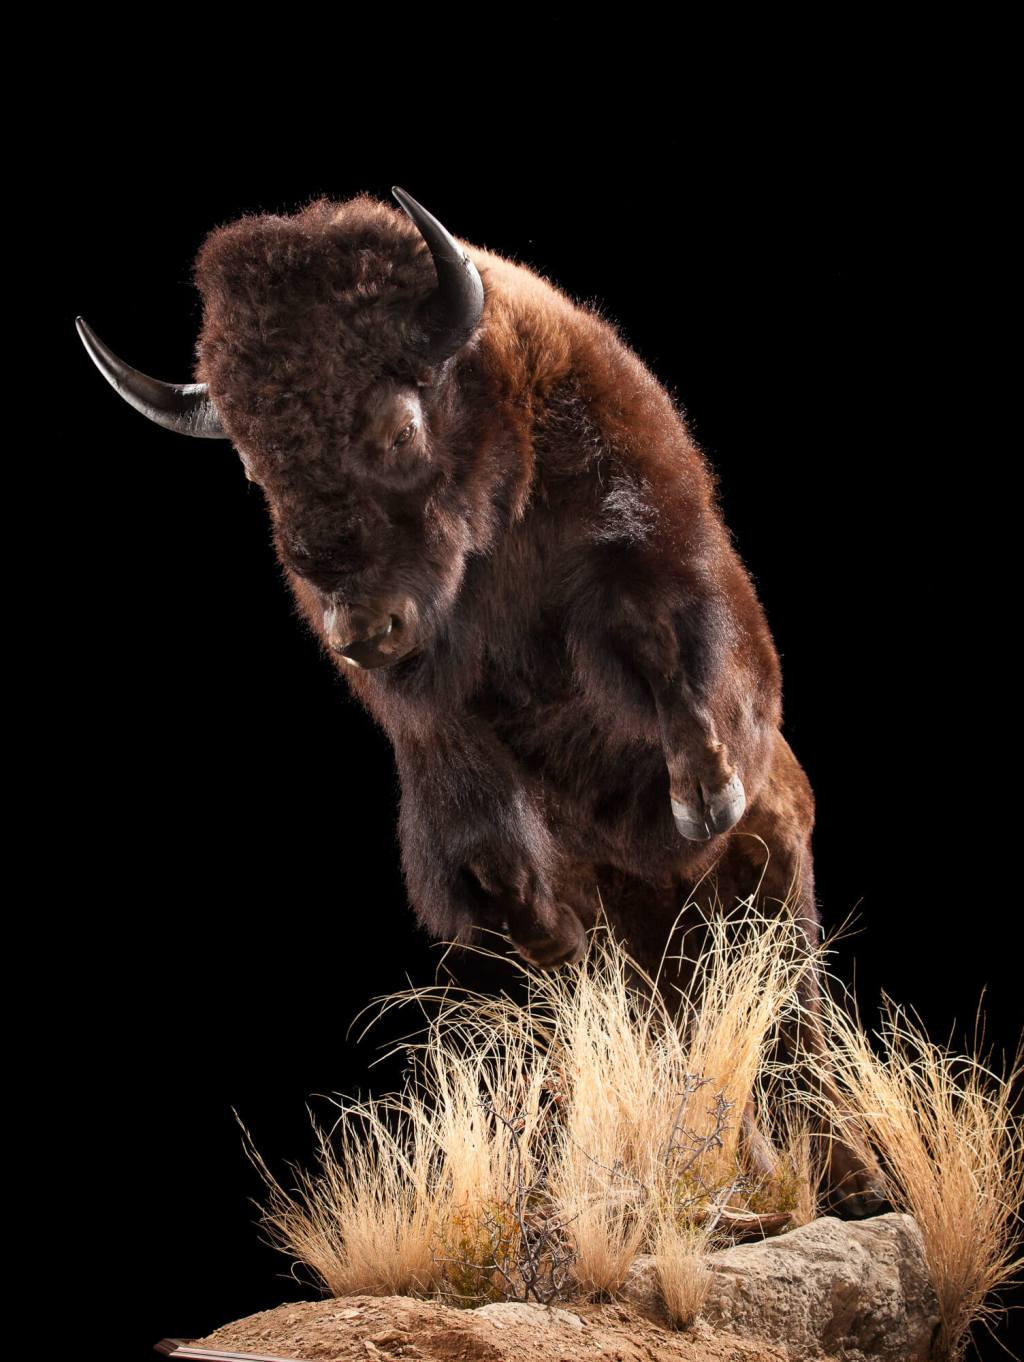 Bison (North American buffalo) taxidermy